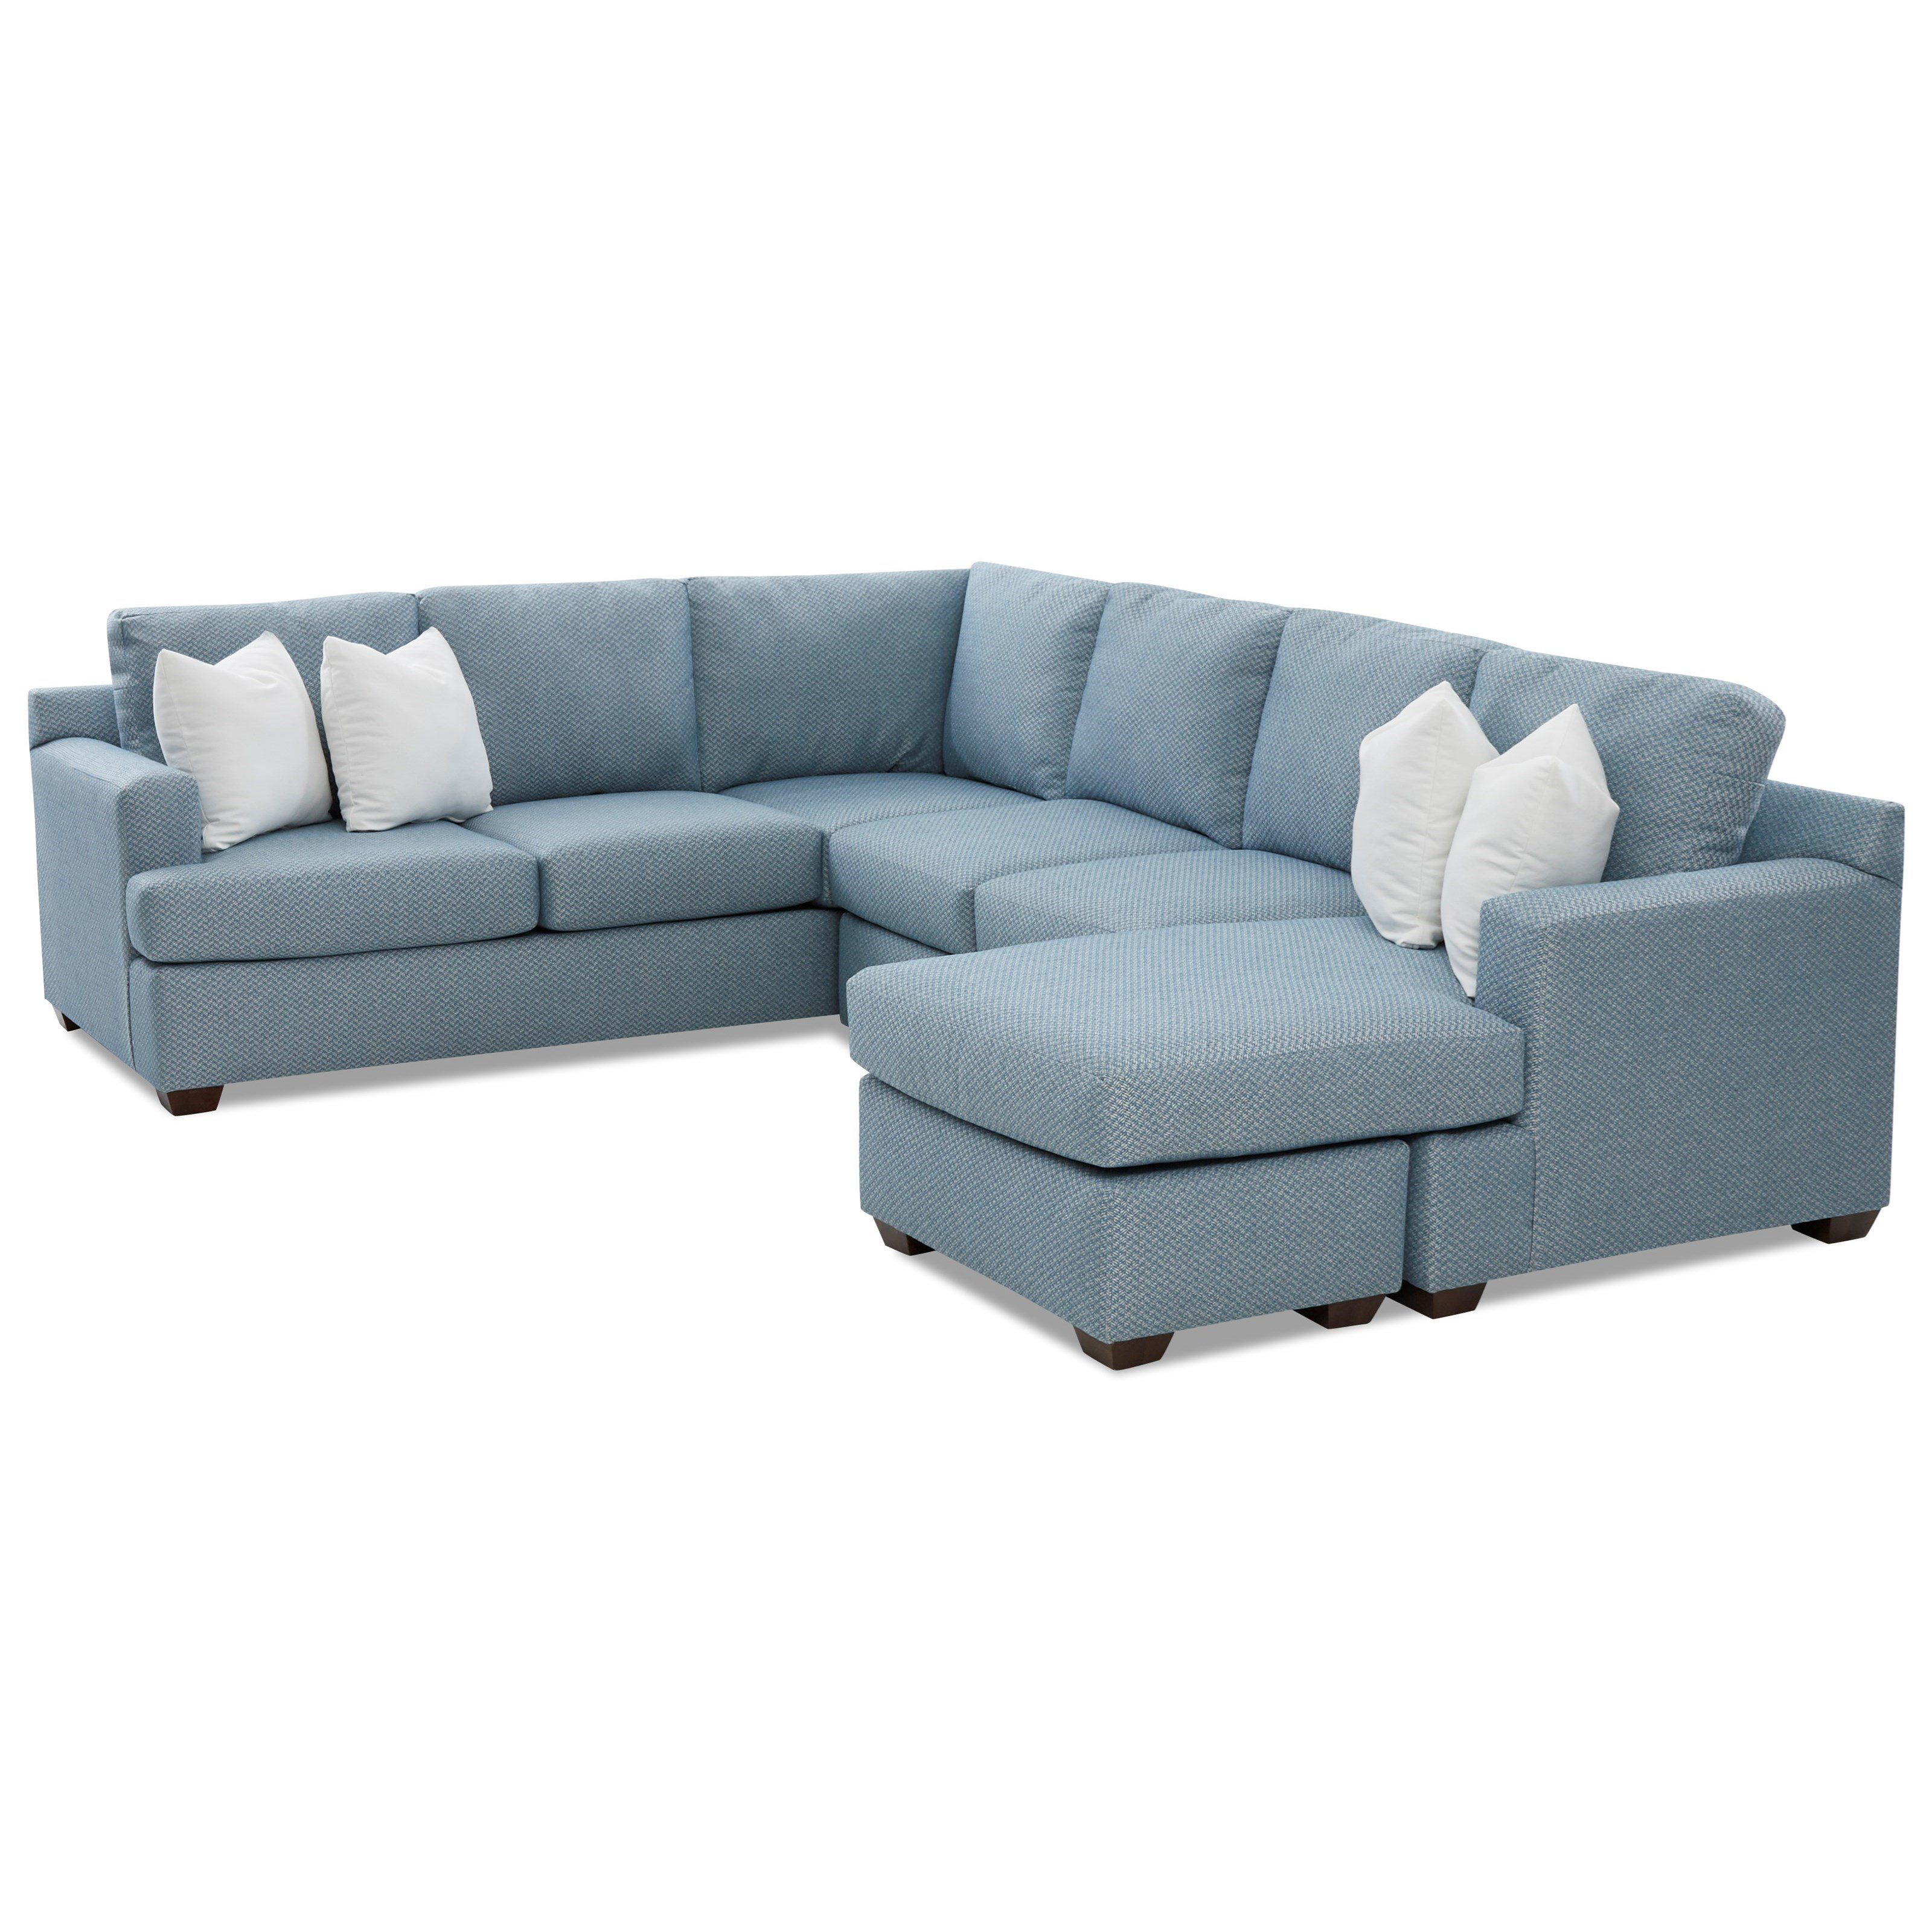 5-Seat Sectional Sofa with RAF Chaise Ottoman